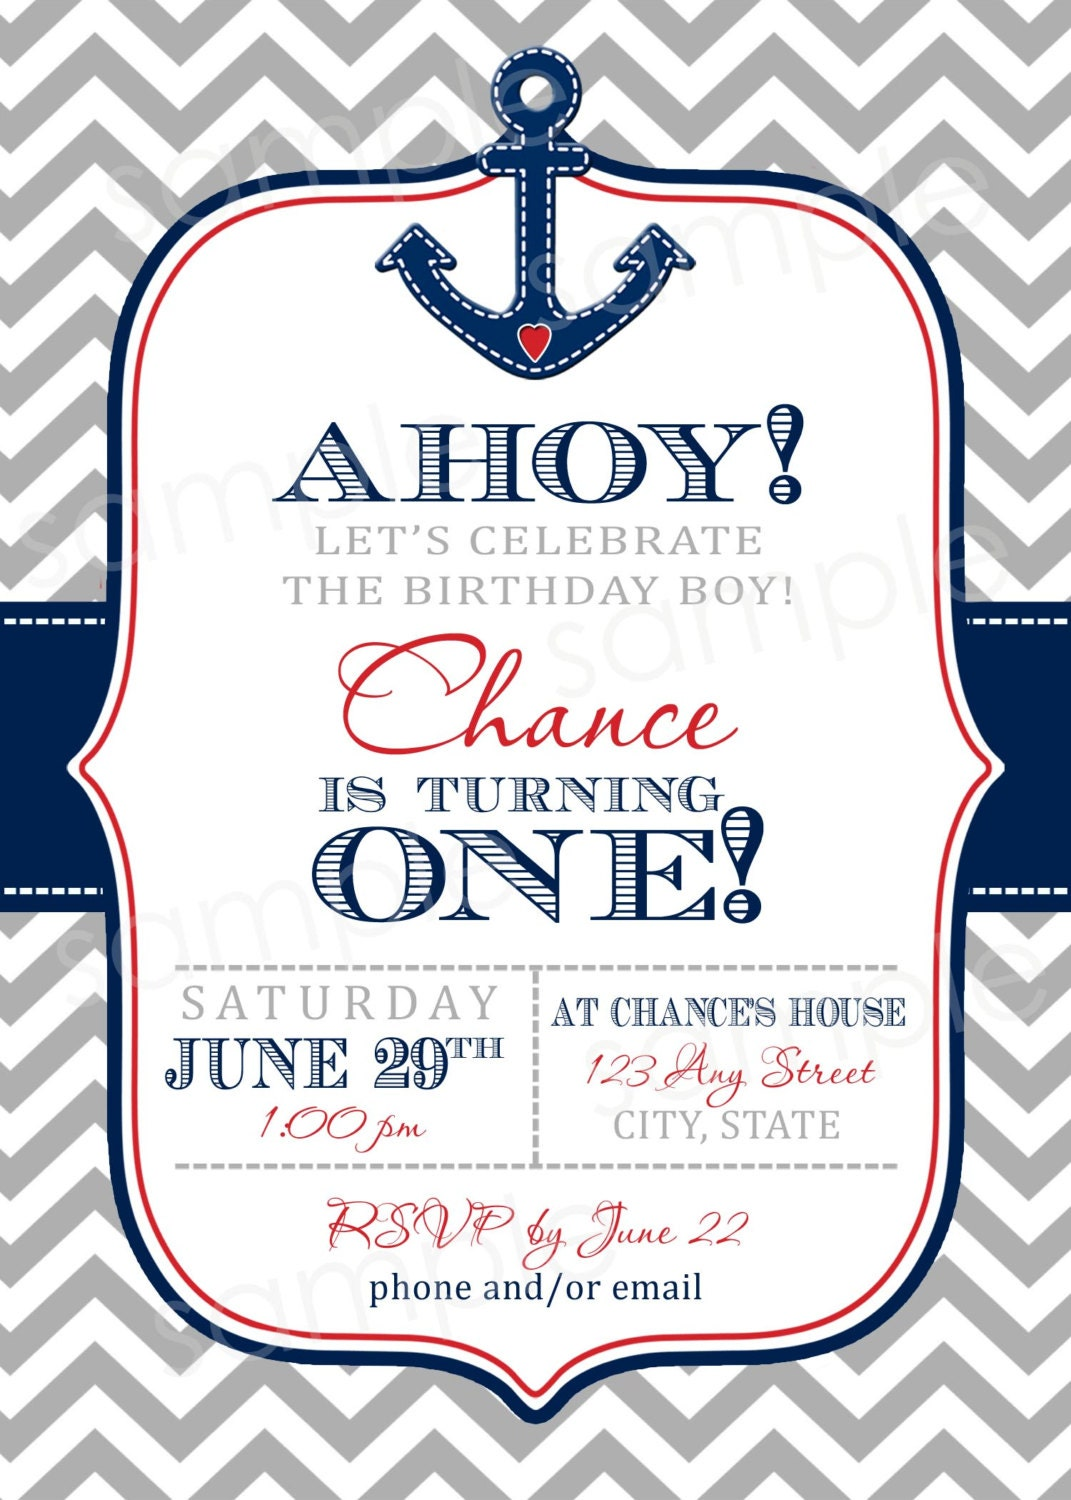 Create A Baby Shower Invitation Online with great invitations ideas